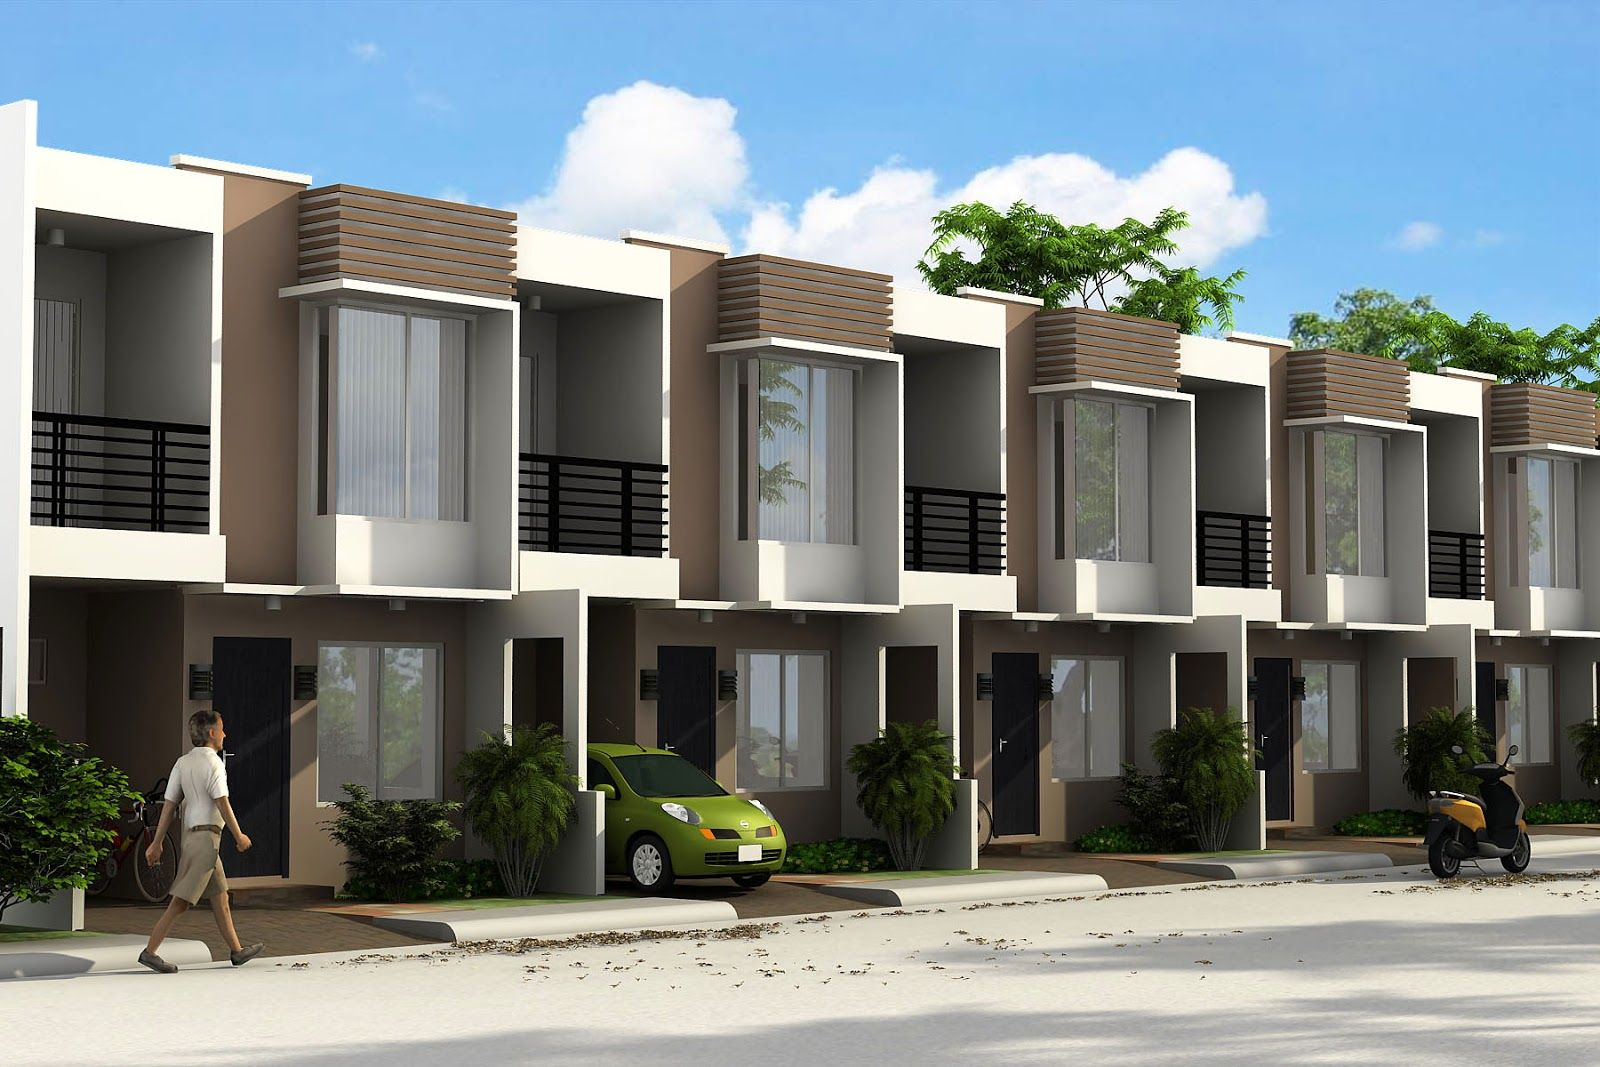 Philippines Townhouse Design Google Search Townhouse Exterior Townhouse Designs Row House Design